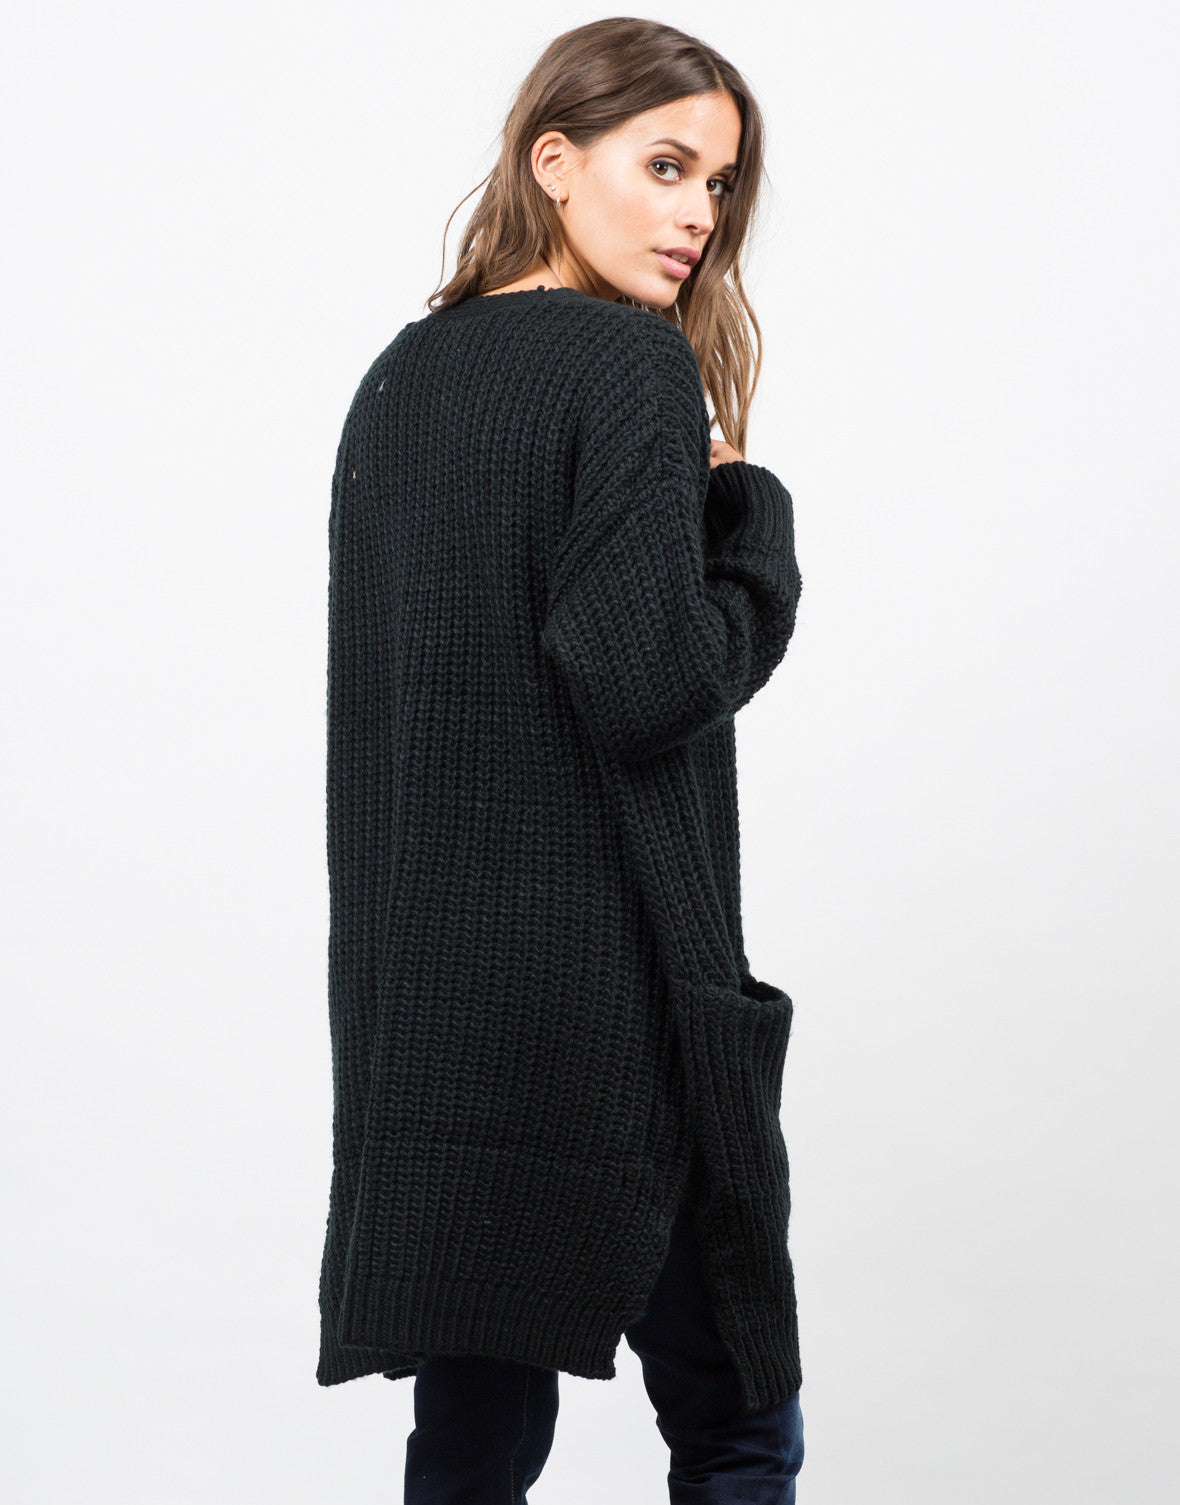 Back View of Chunky Oversized Knit Cardigan